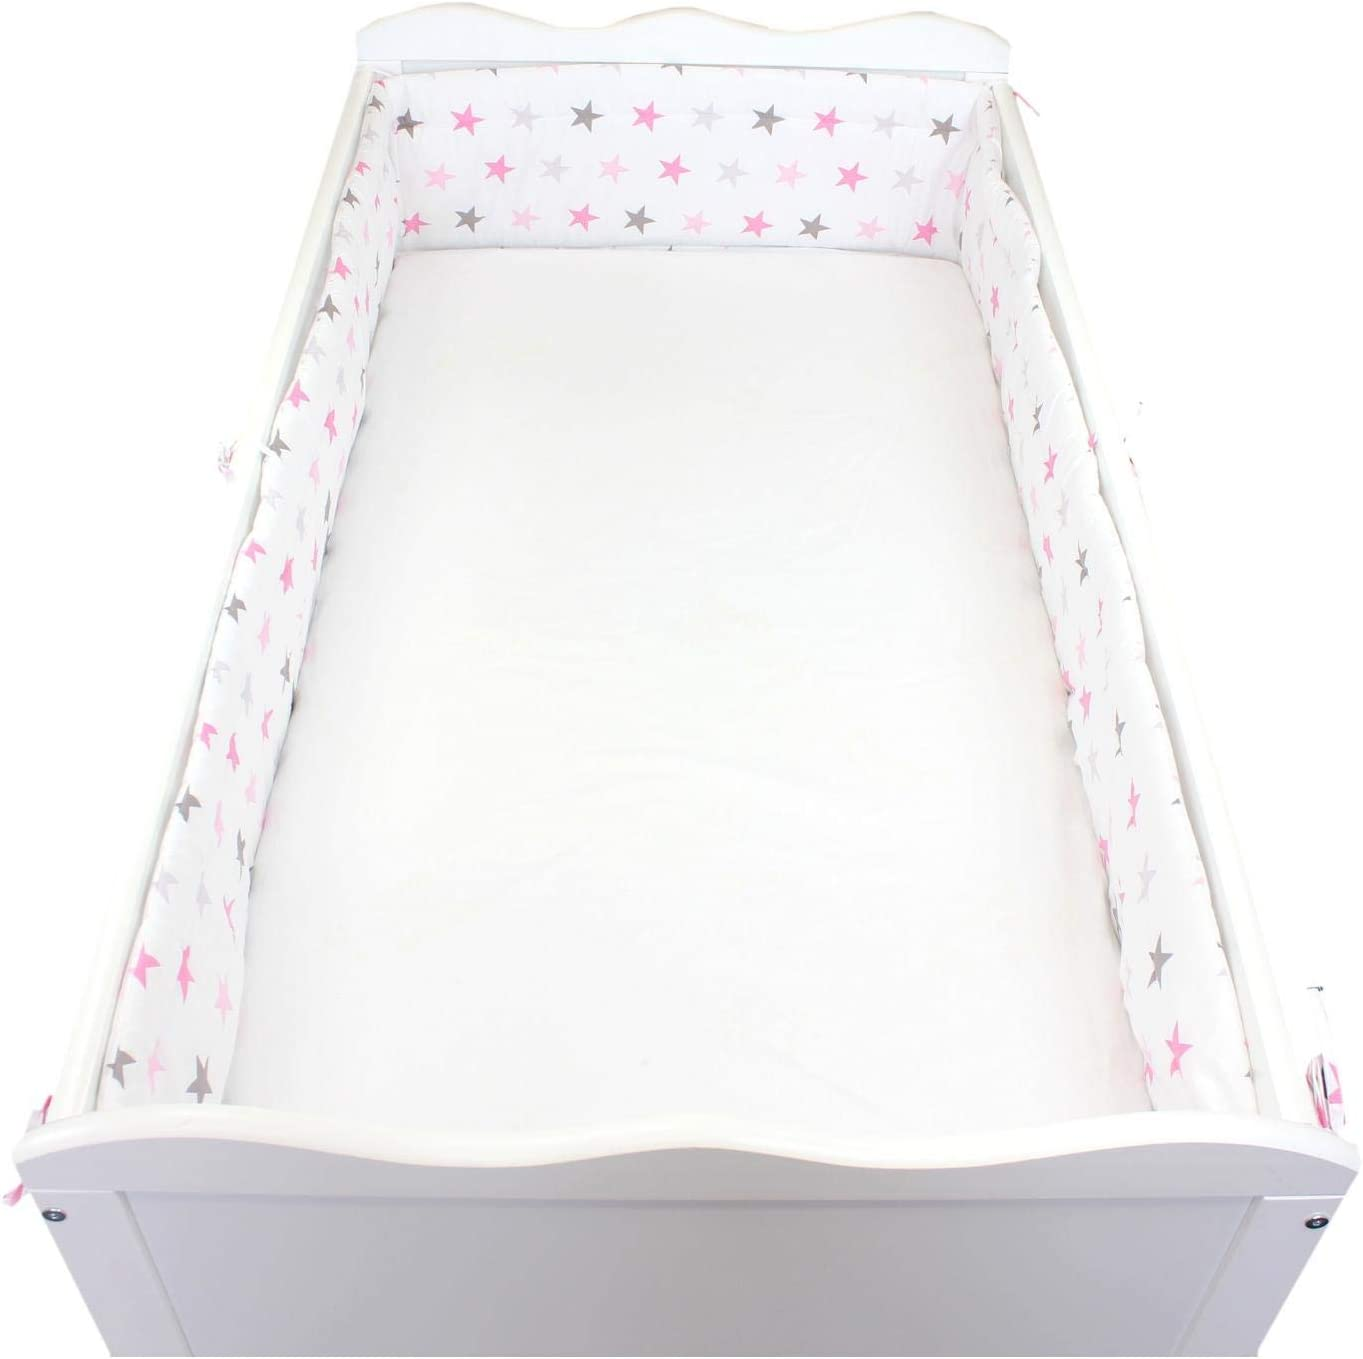 TupTam Baby Cot Bumper All Around Padded Bed Protection Flowers Pink Cot 140x70 cm 420x30 cm